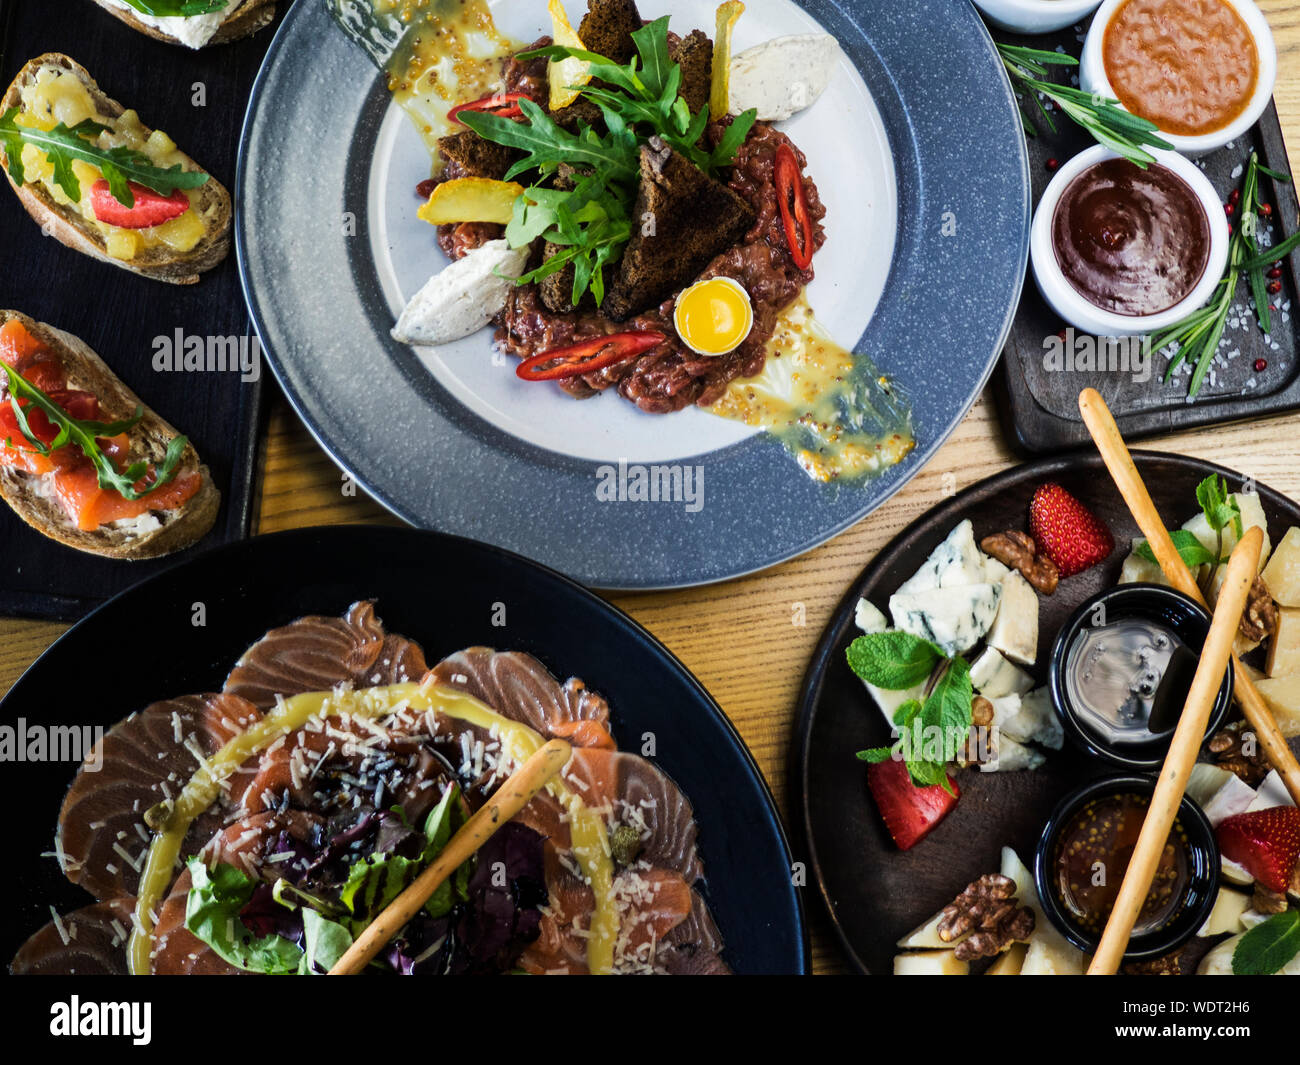 High Angle View Of Fresh Meal Served On Table Stock Photo